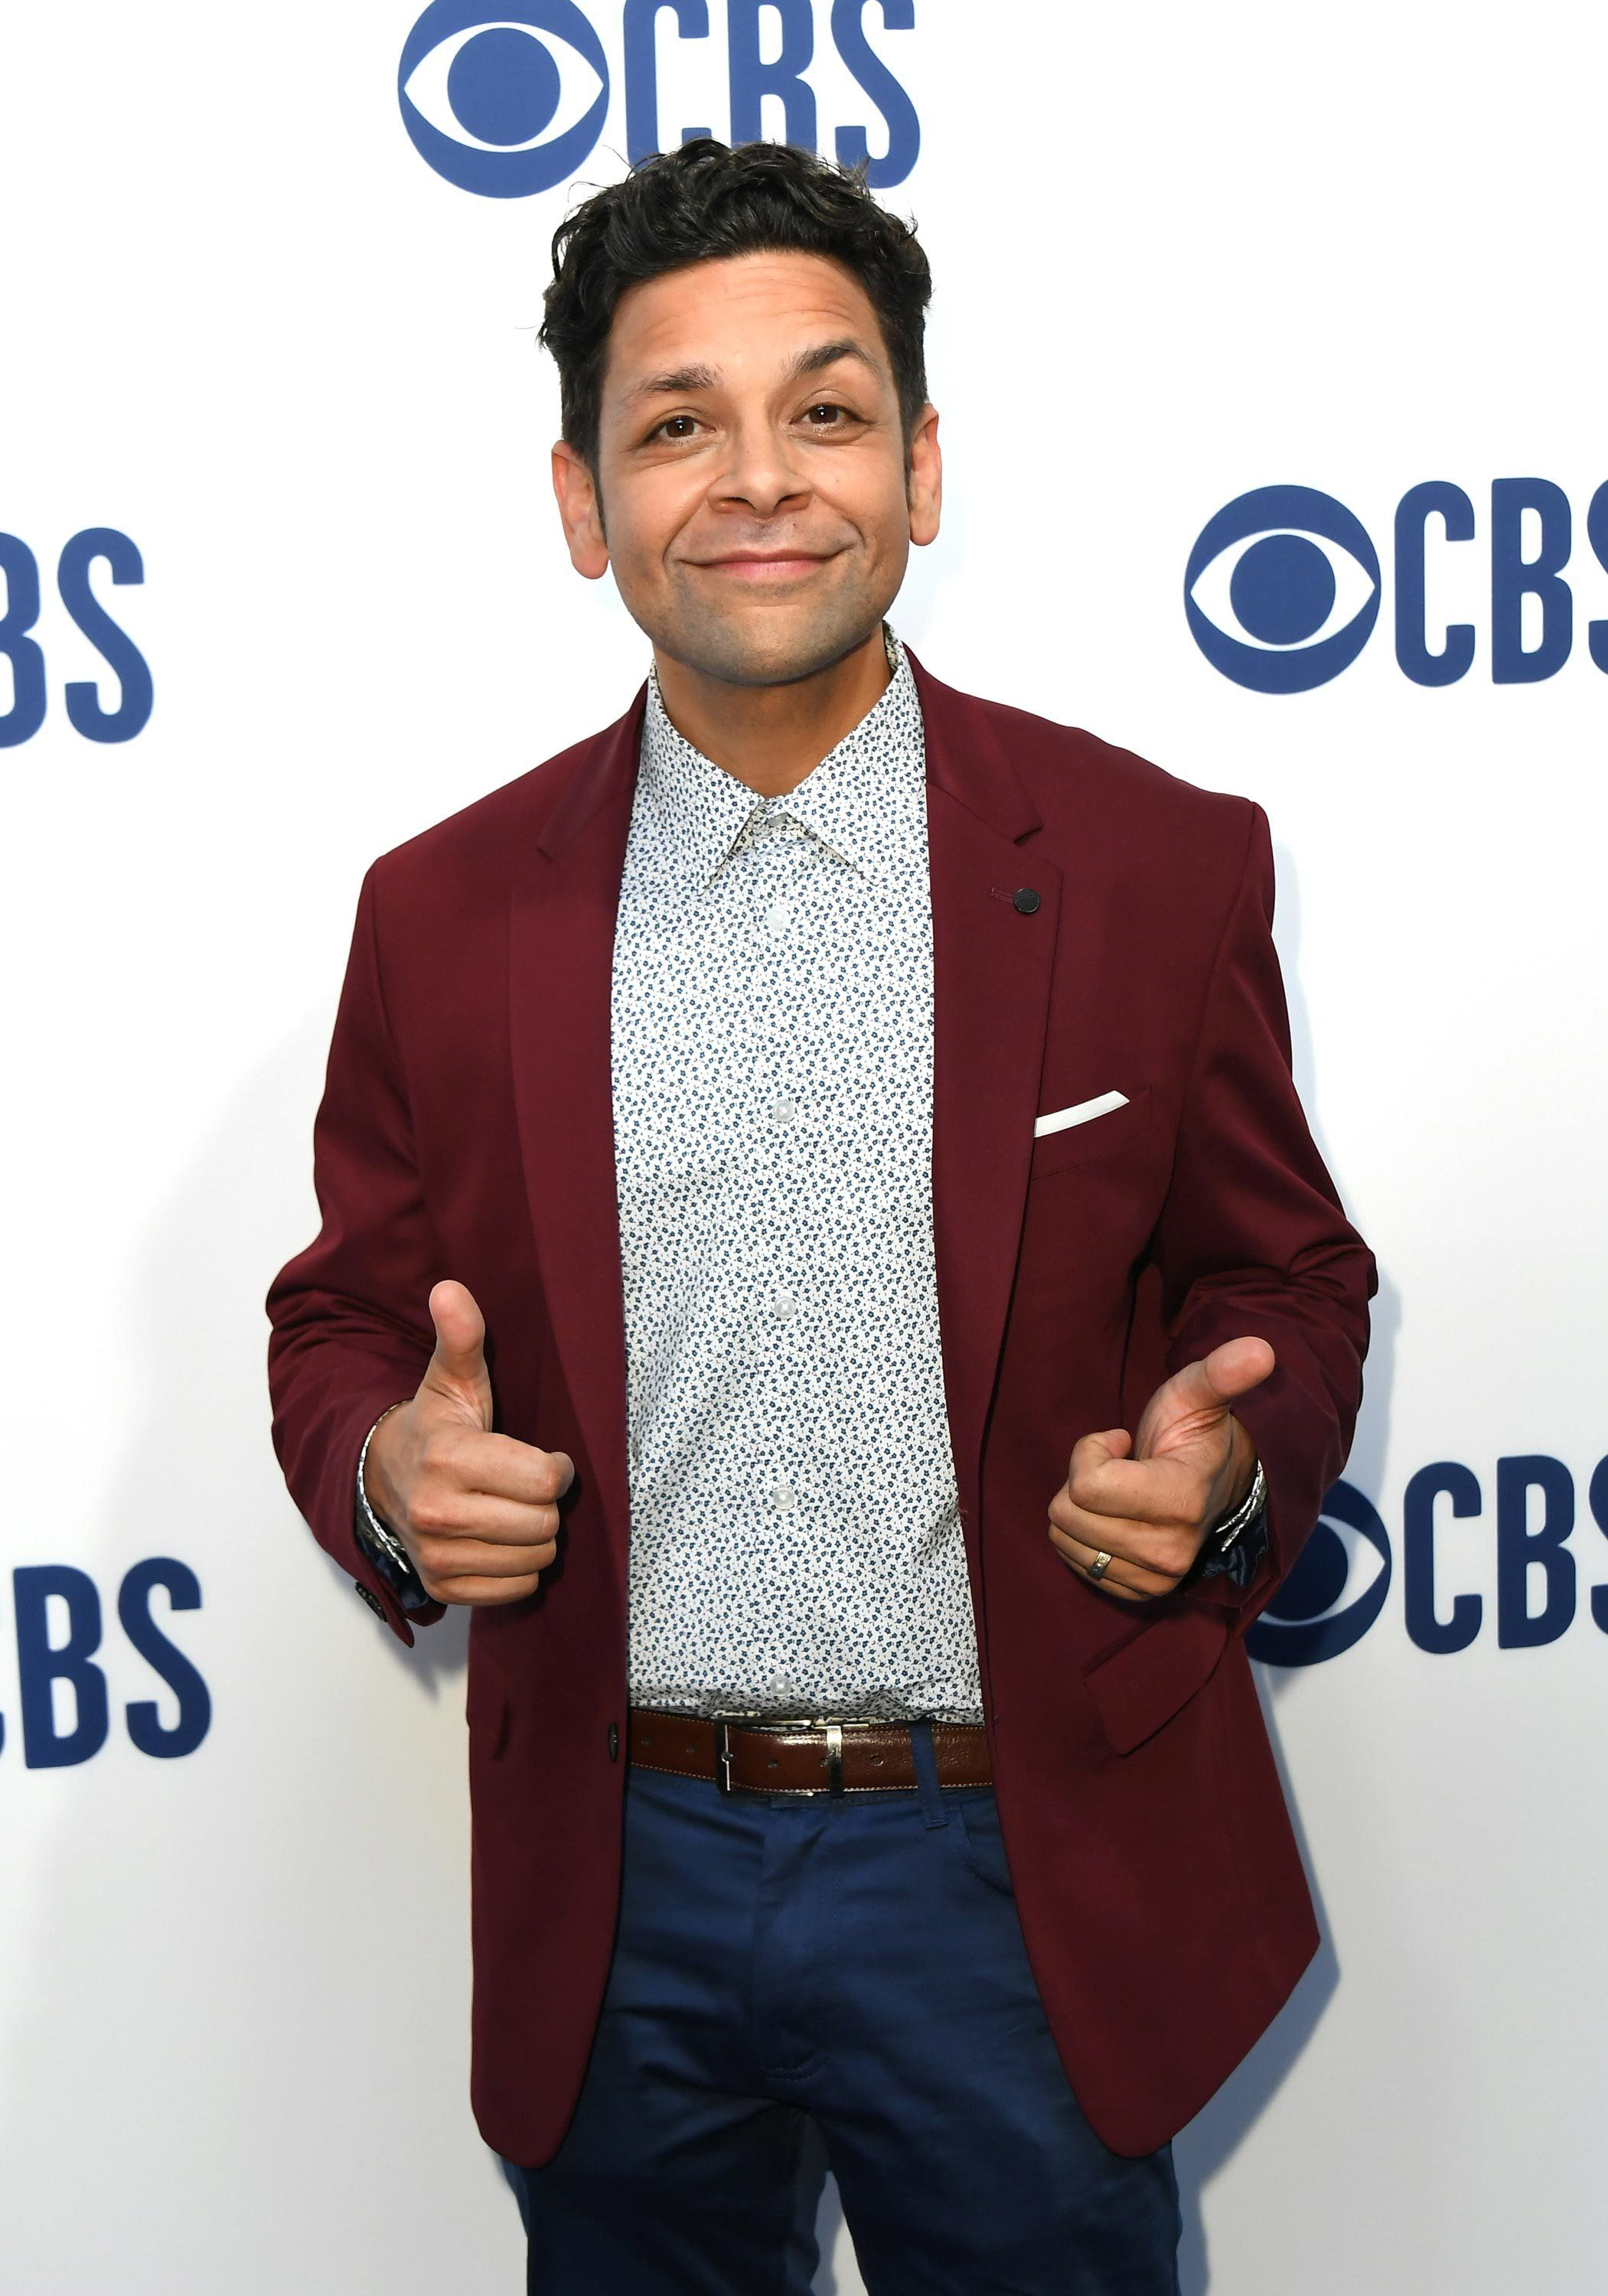 Izzy Diaz of TV show Broke